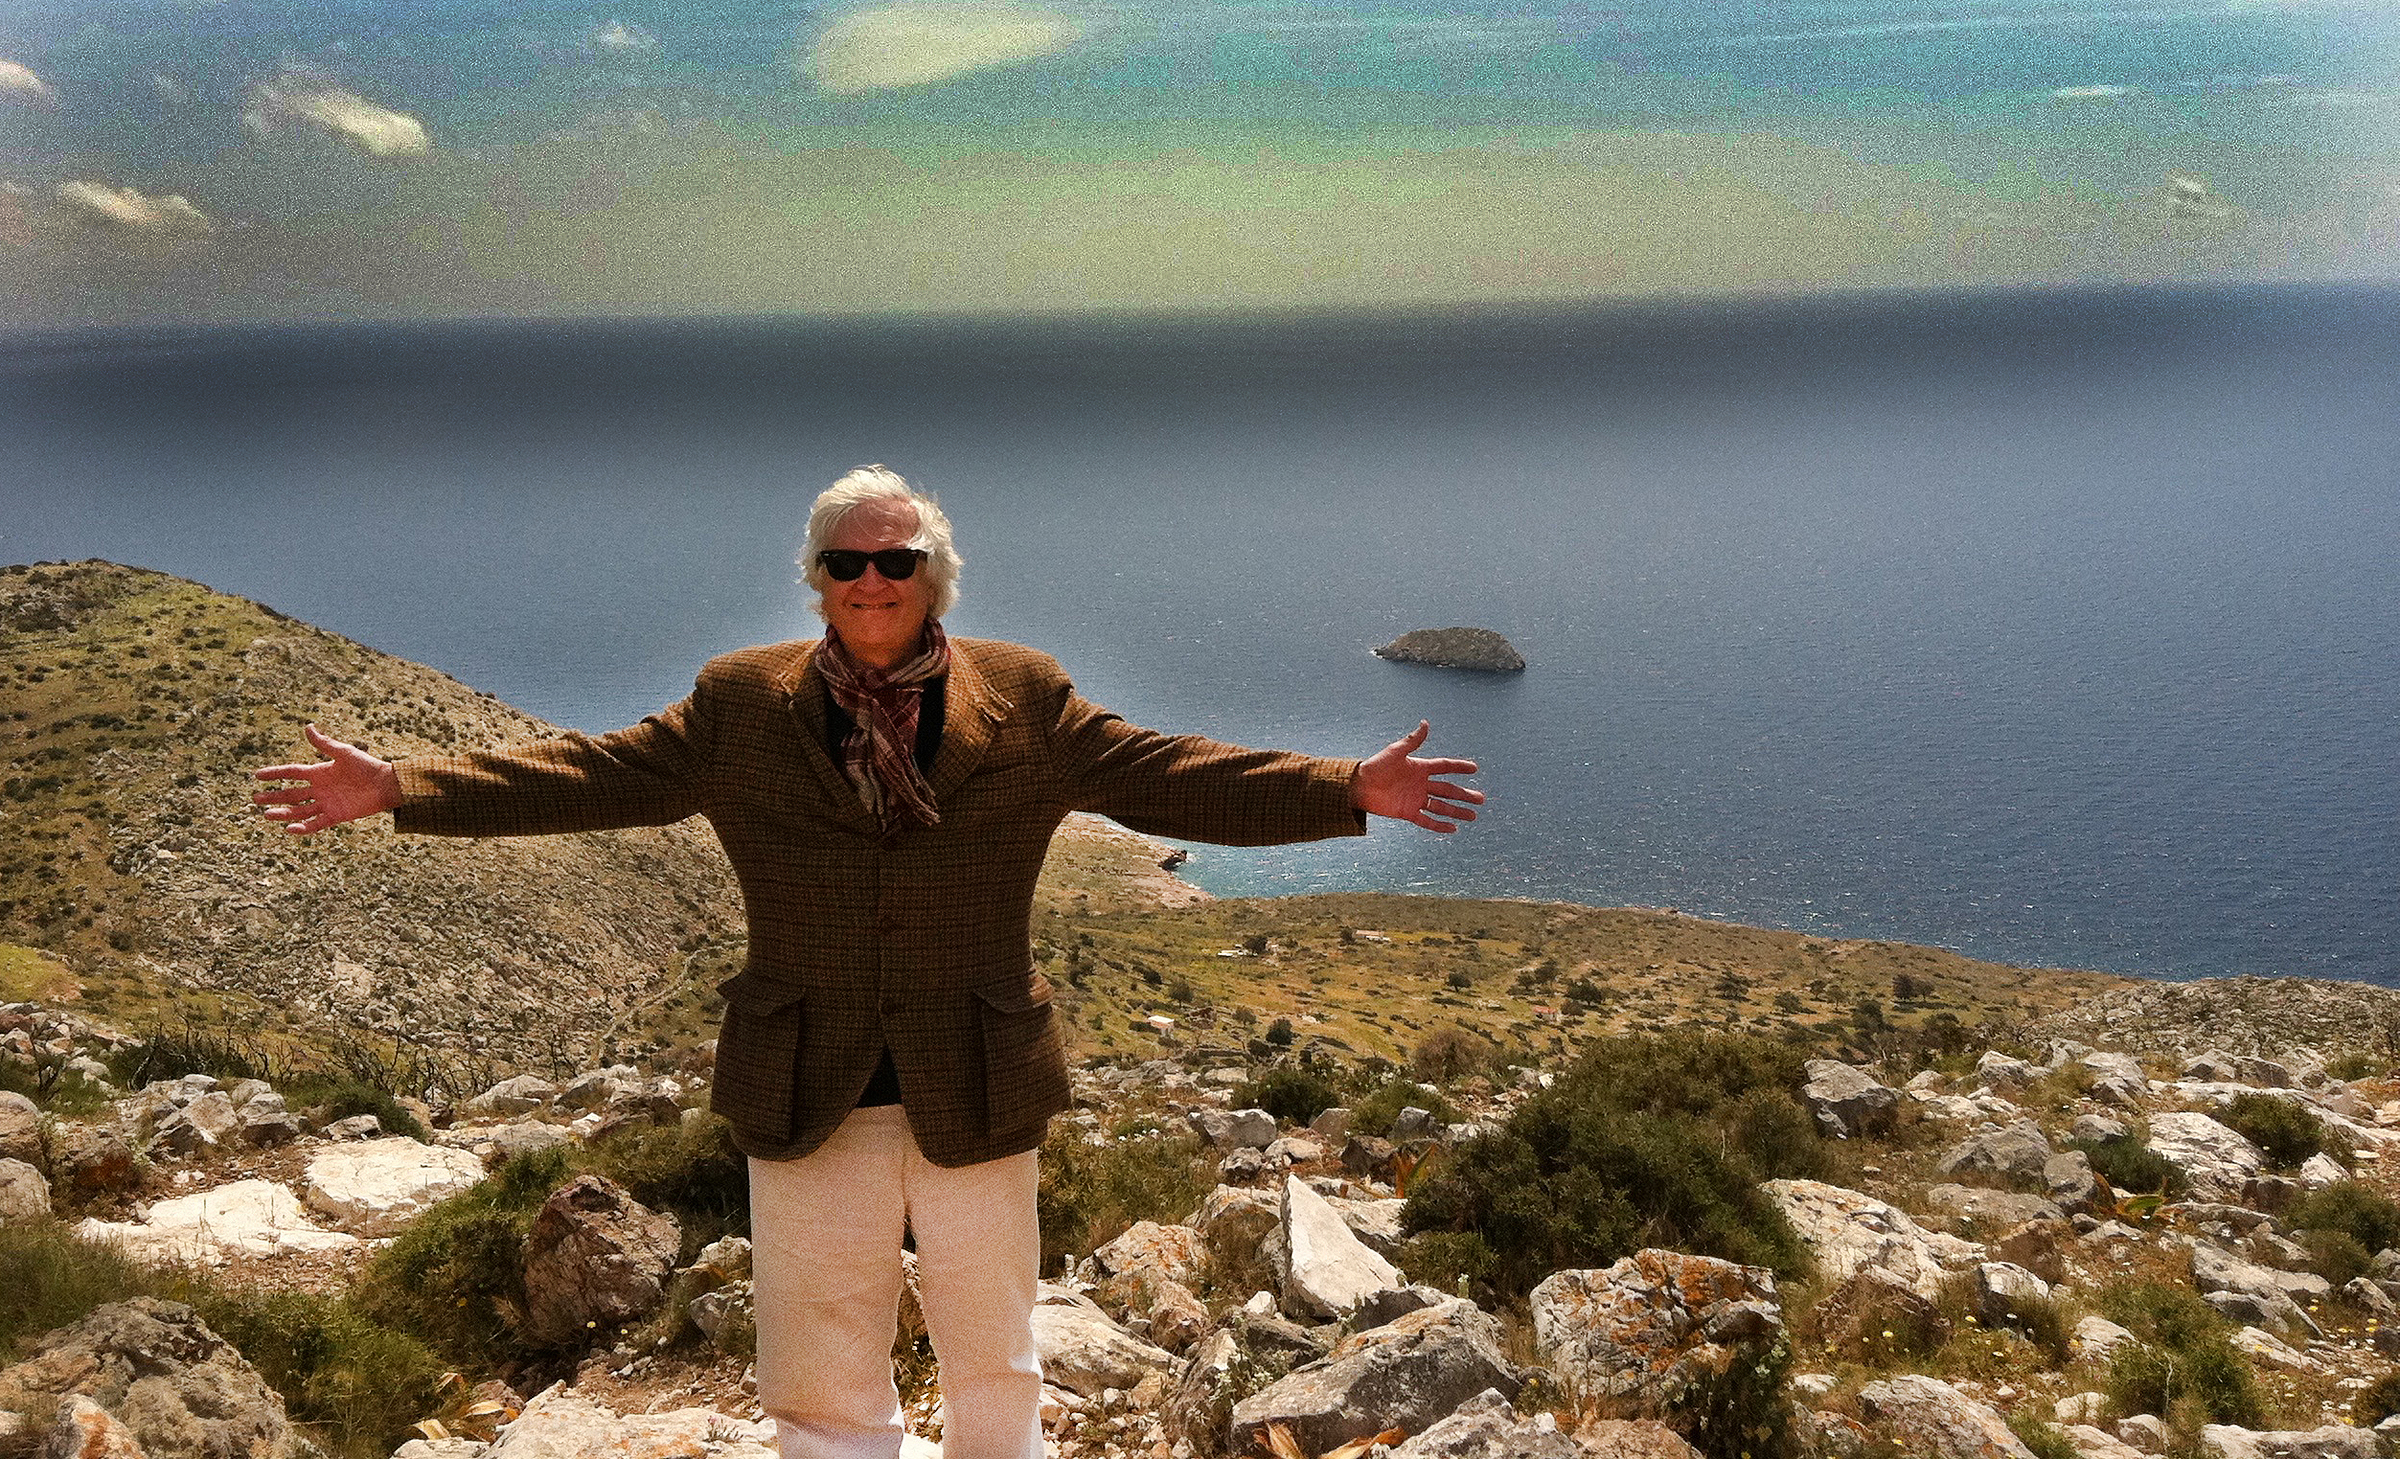 Big hug from Hydra, Greece.